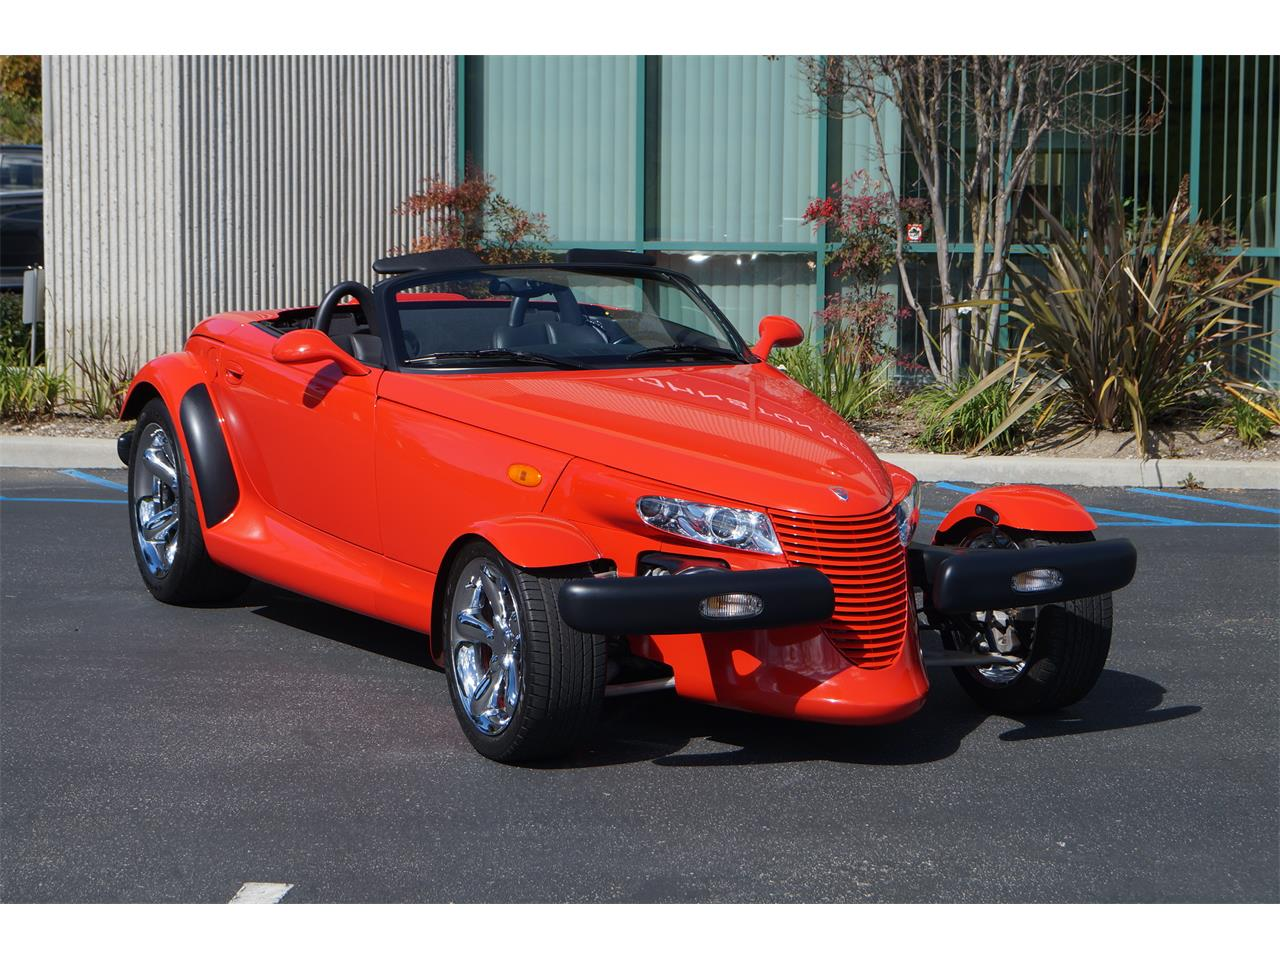 2000 Plymouth Prowler for sale in Thousand Oaks, CA – photo 39